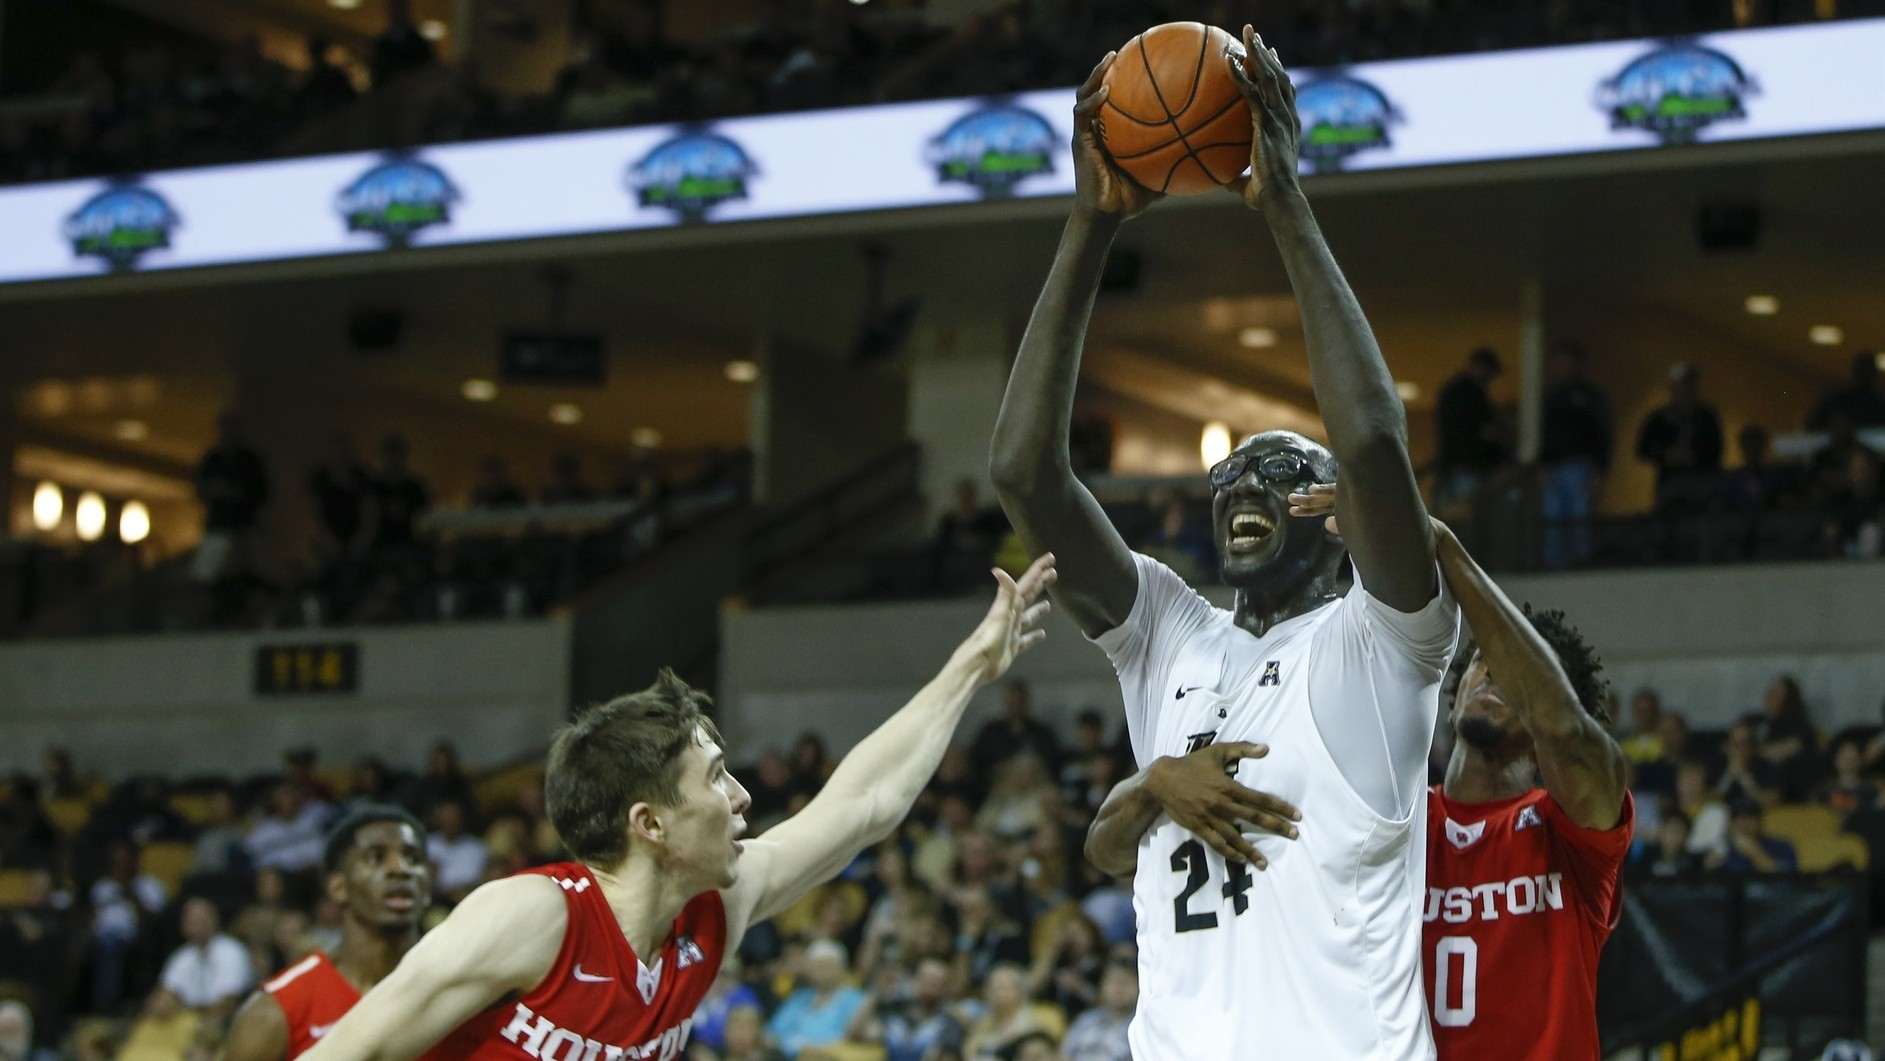 Can UCF's Seven-Foot-Six Giant Tacko Fall Develop into an Offensive Force?